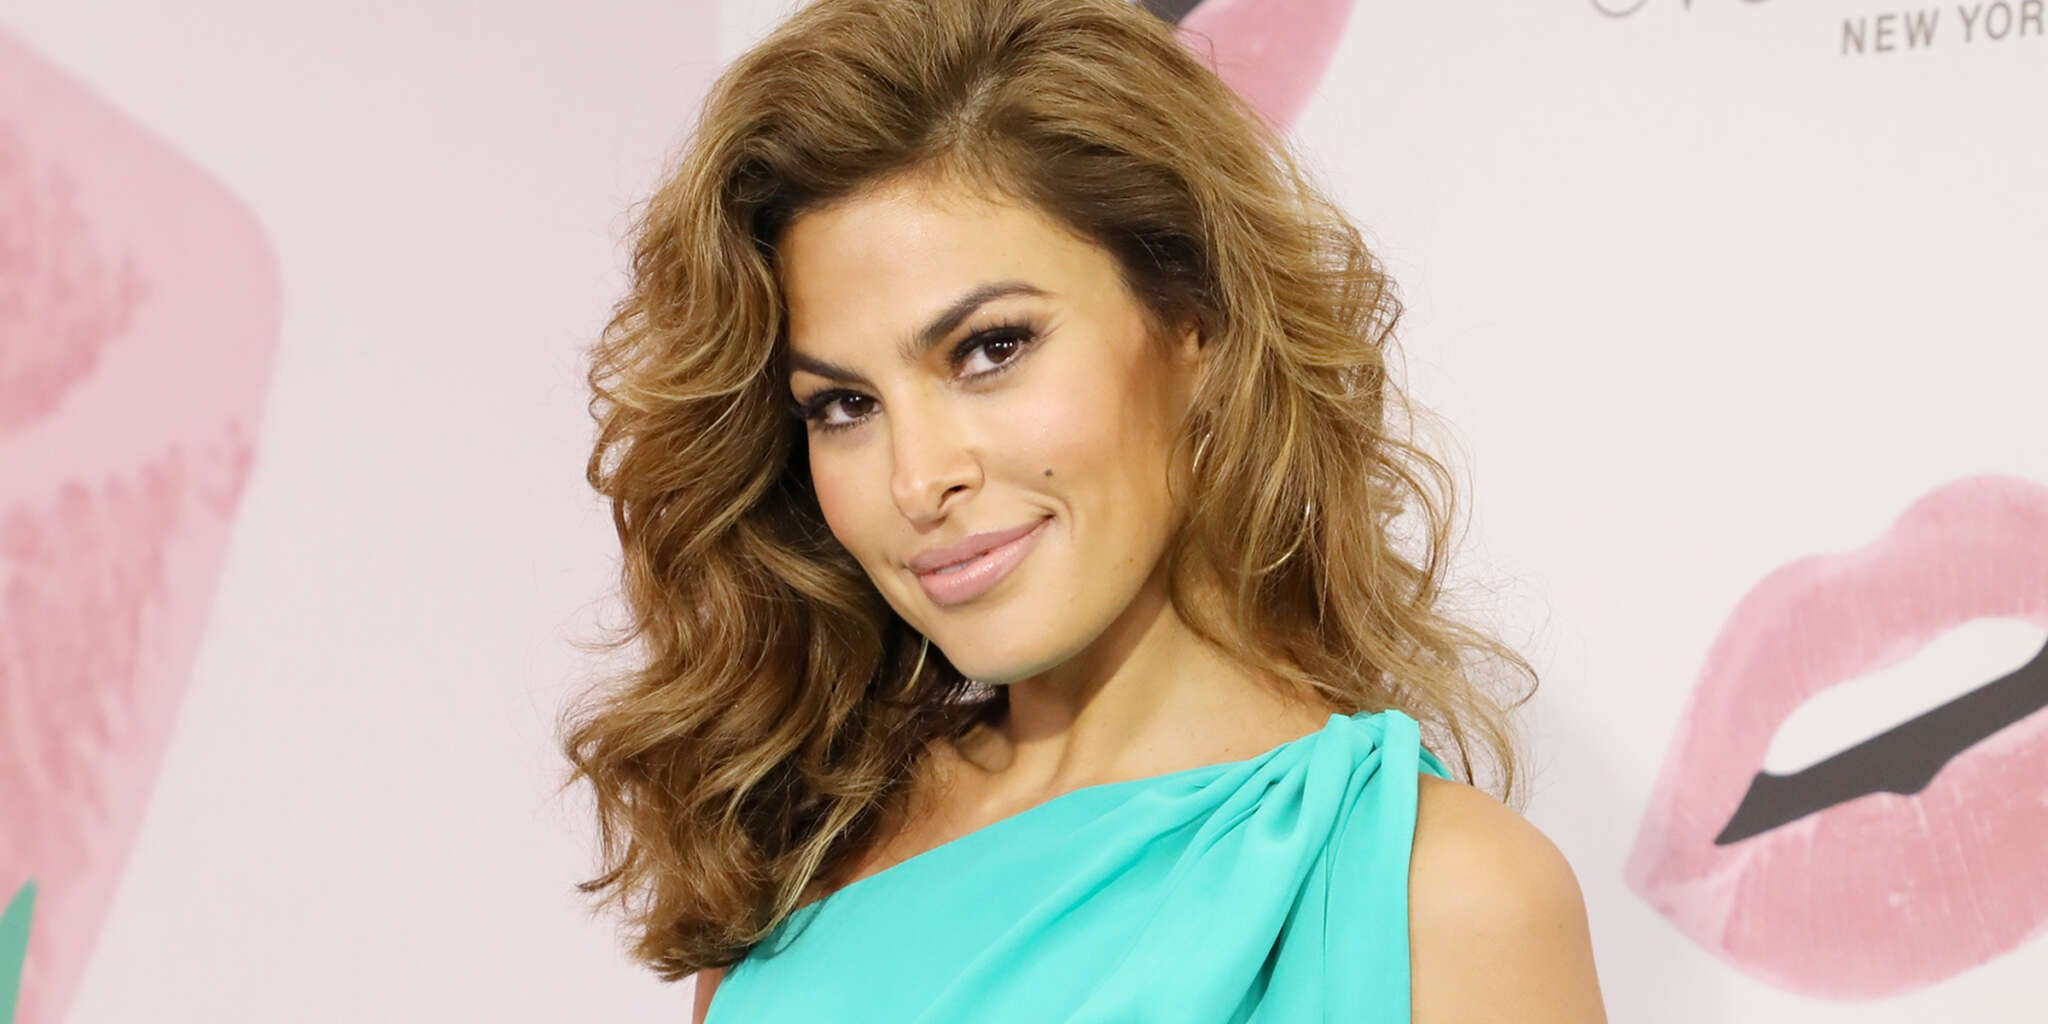 Eva Mendes Hater Says She's Not Posting On Social Media Because Of Botched Plastic Surgery – Check Out Her Response!